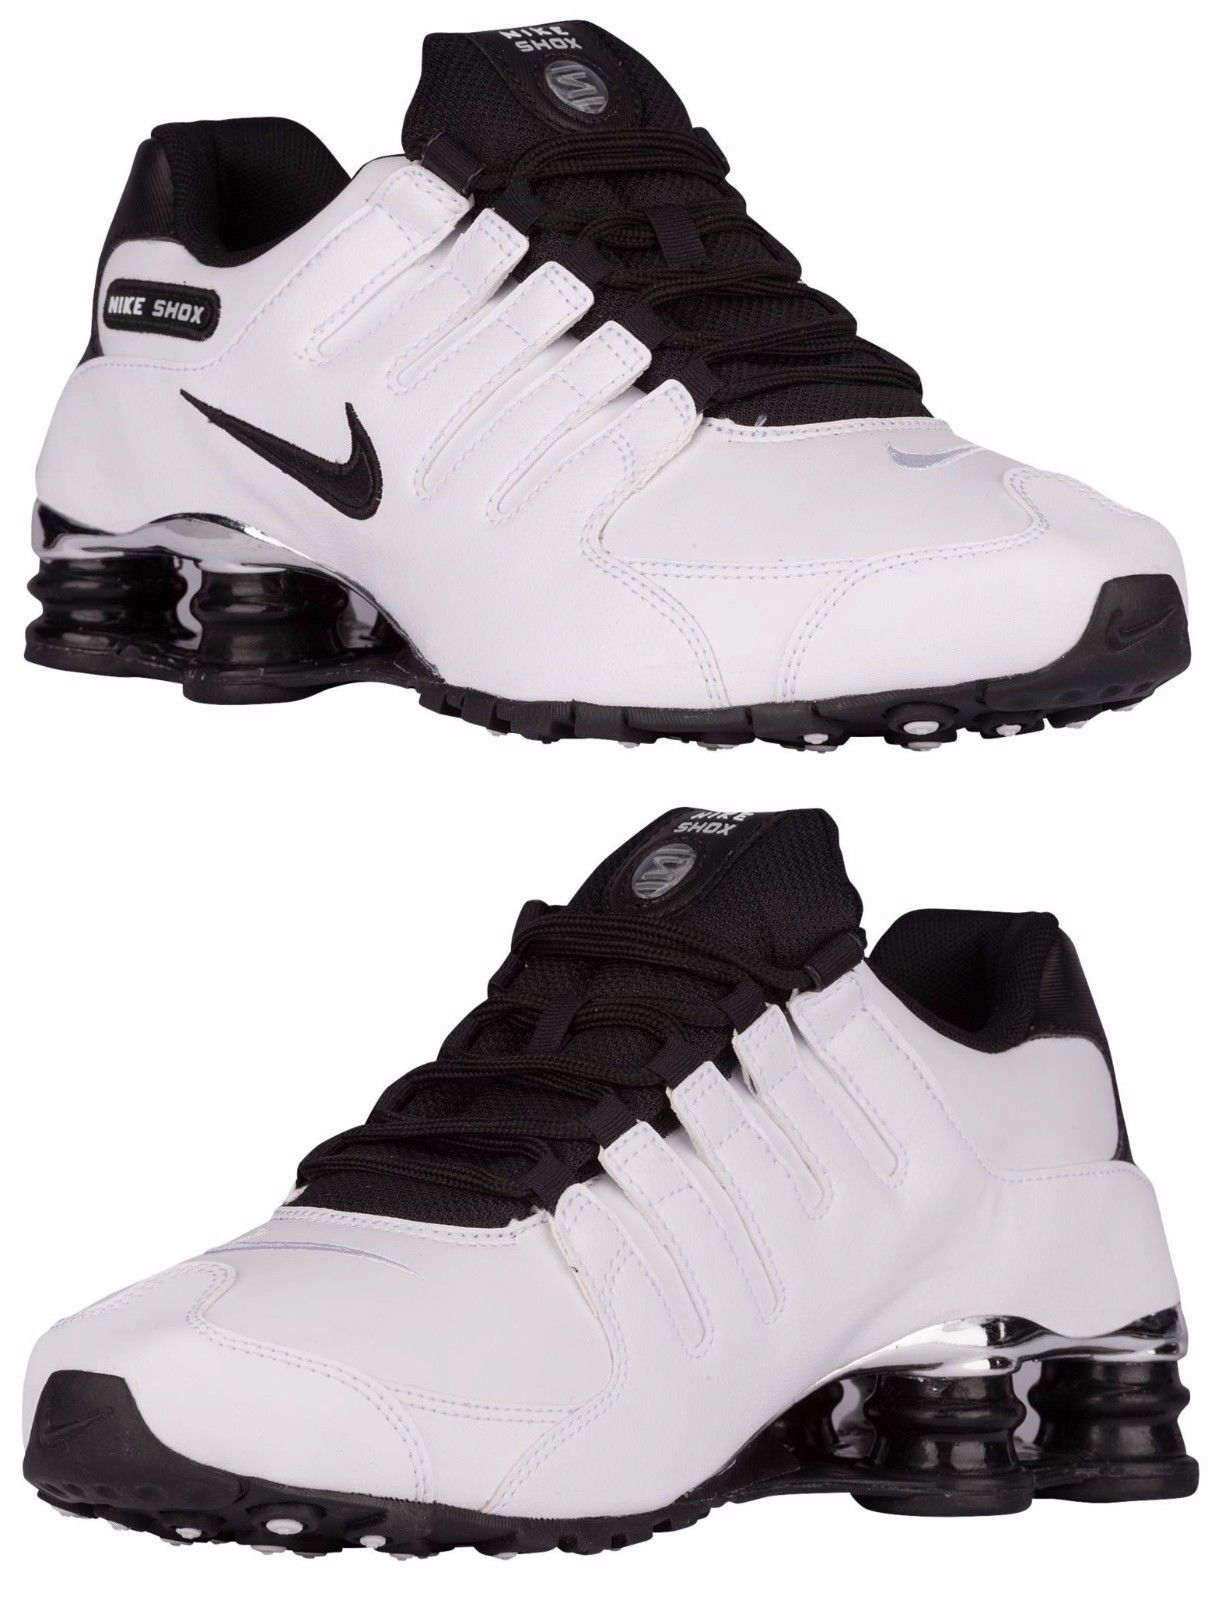 NIKE SHOX NZ PRE MEN s LEATHER M RUNNING WHITE - BLACK - WOLF GREY  AUTHENTIC NEW 4ee40fa8d